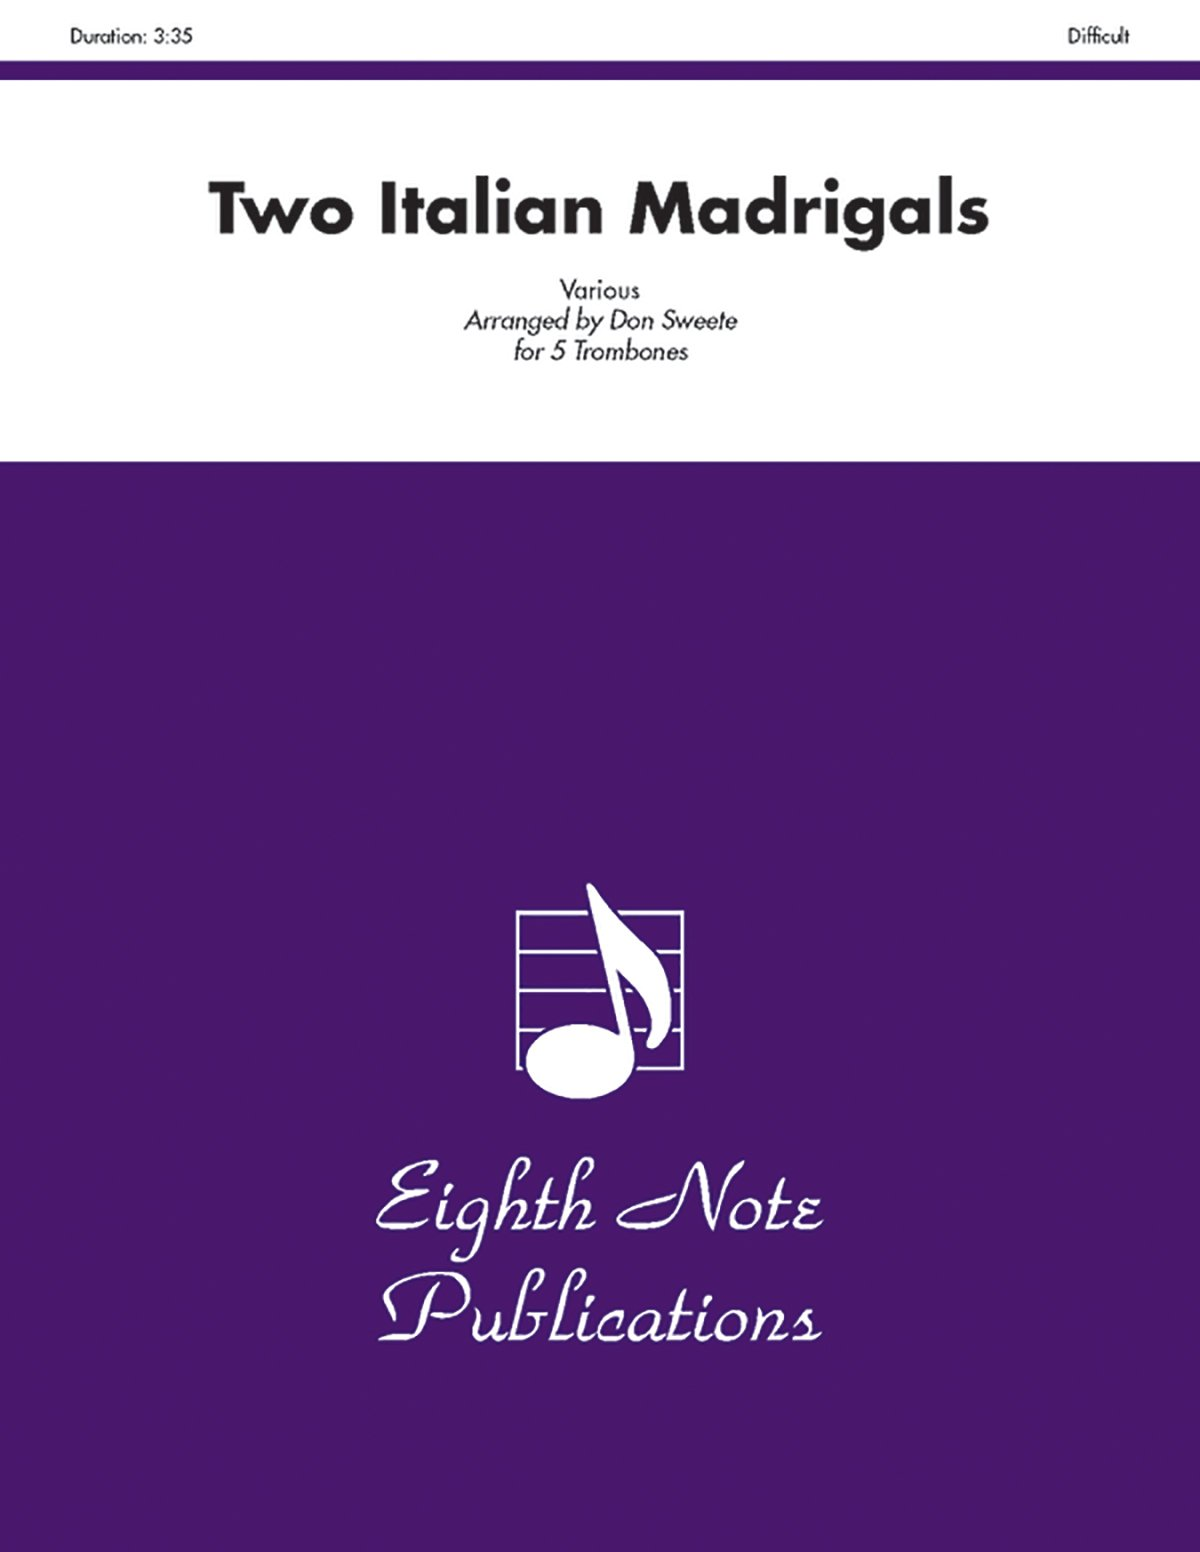 Two Italian Madrigals (Score & Parts) (Eighth Note Publications) PDF